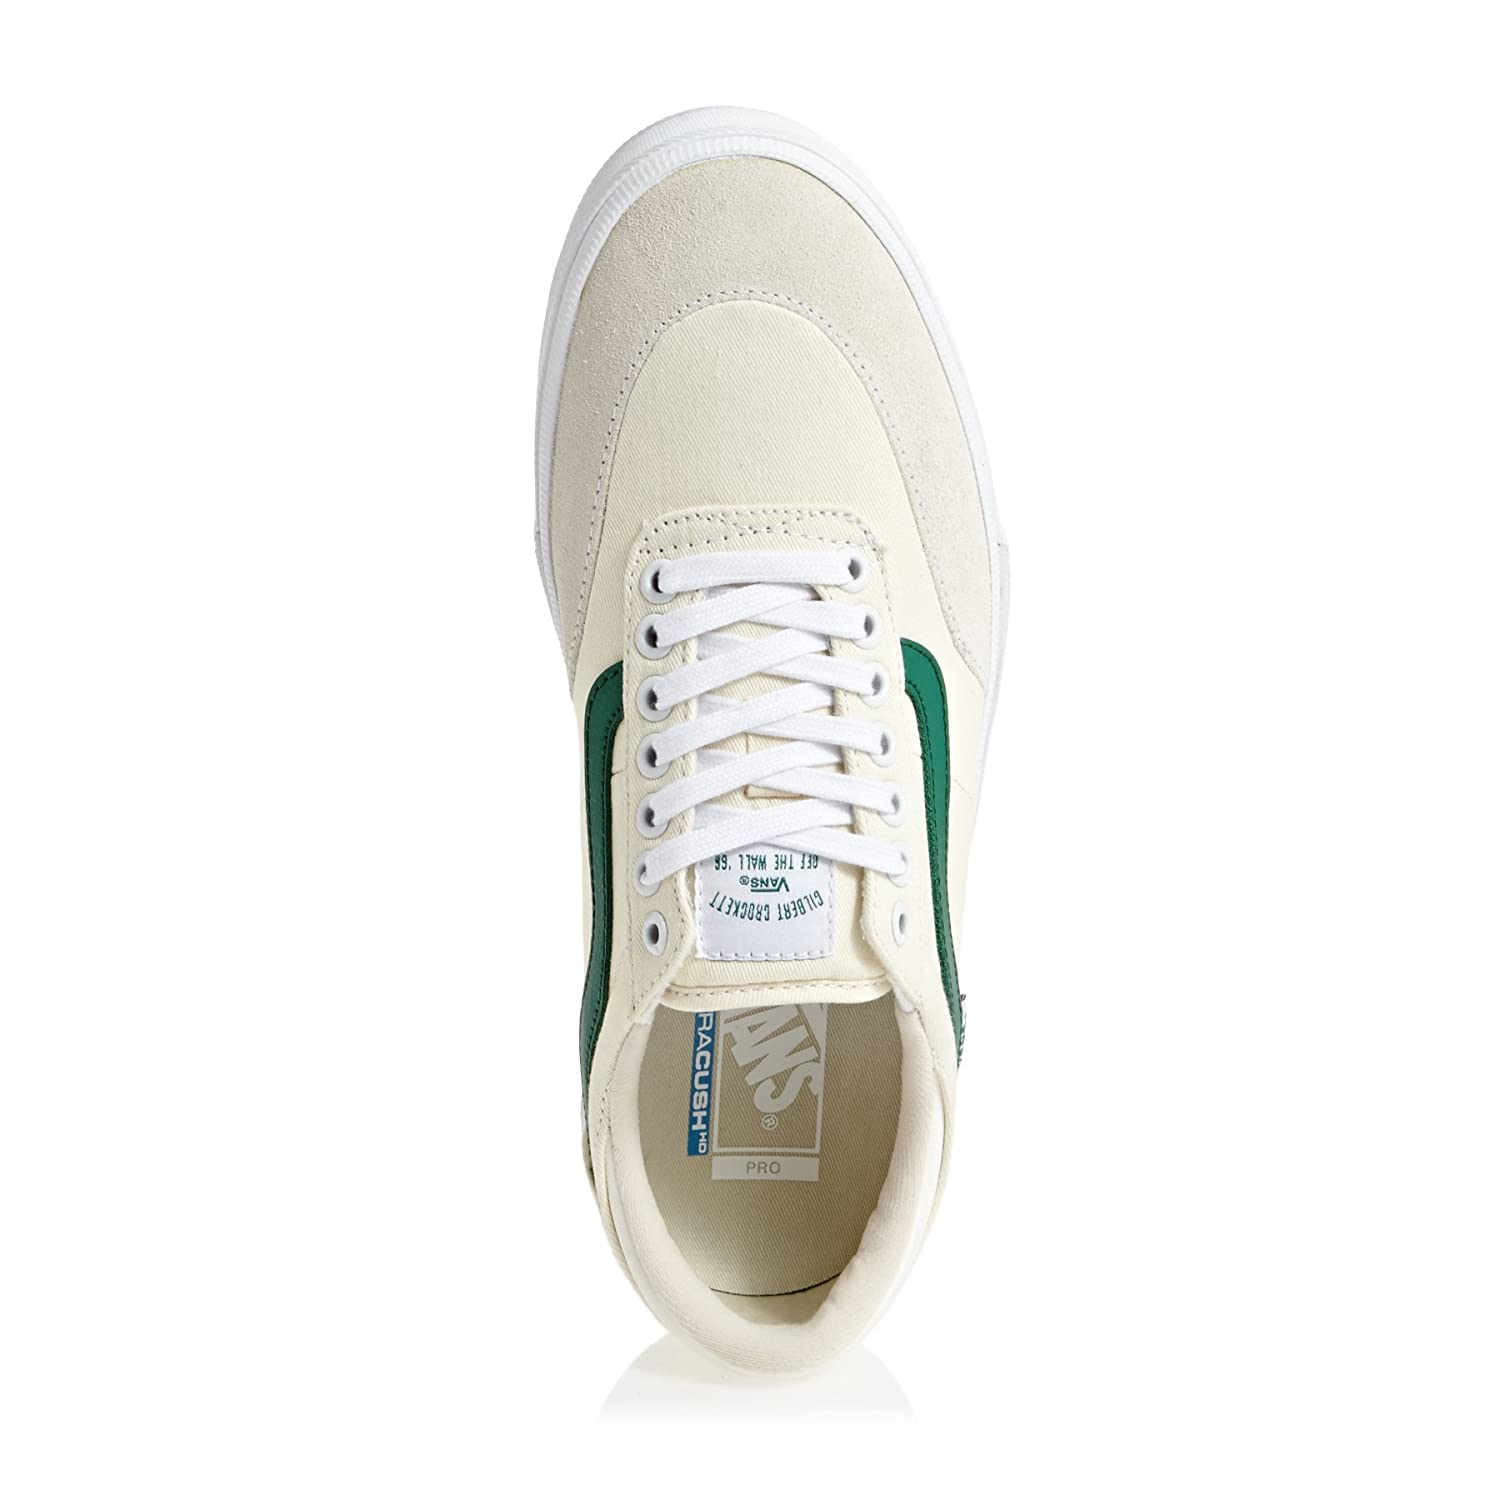 Vans Gilbert Crockett 2 Pro Center Court Classic White Evergreen Skate Shoes   Amazon.co.uk  Shoes   Bags 88cecf8c9